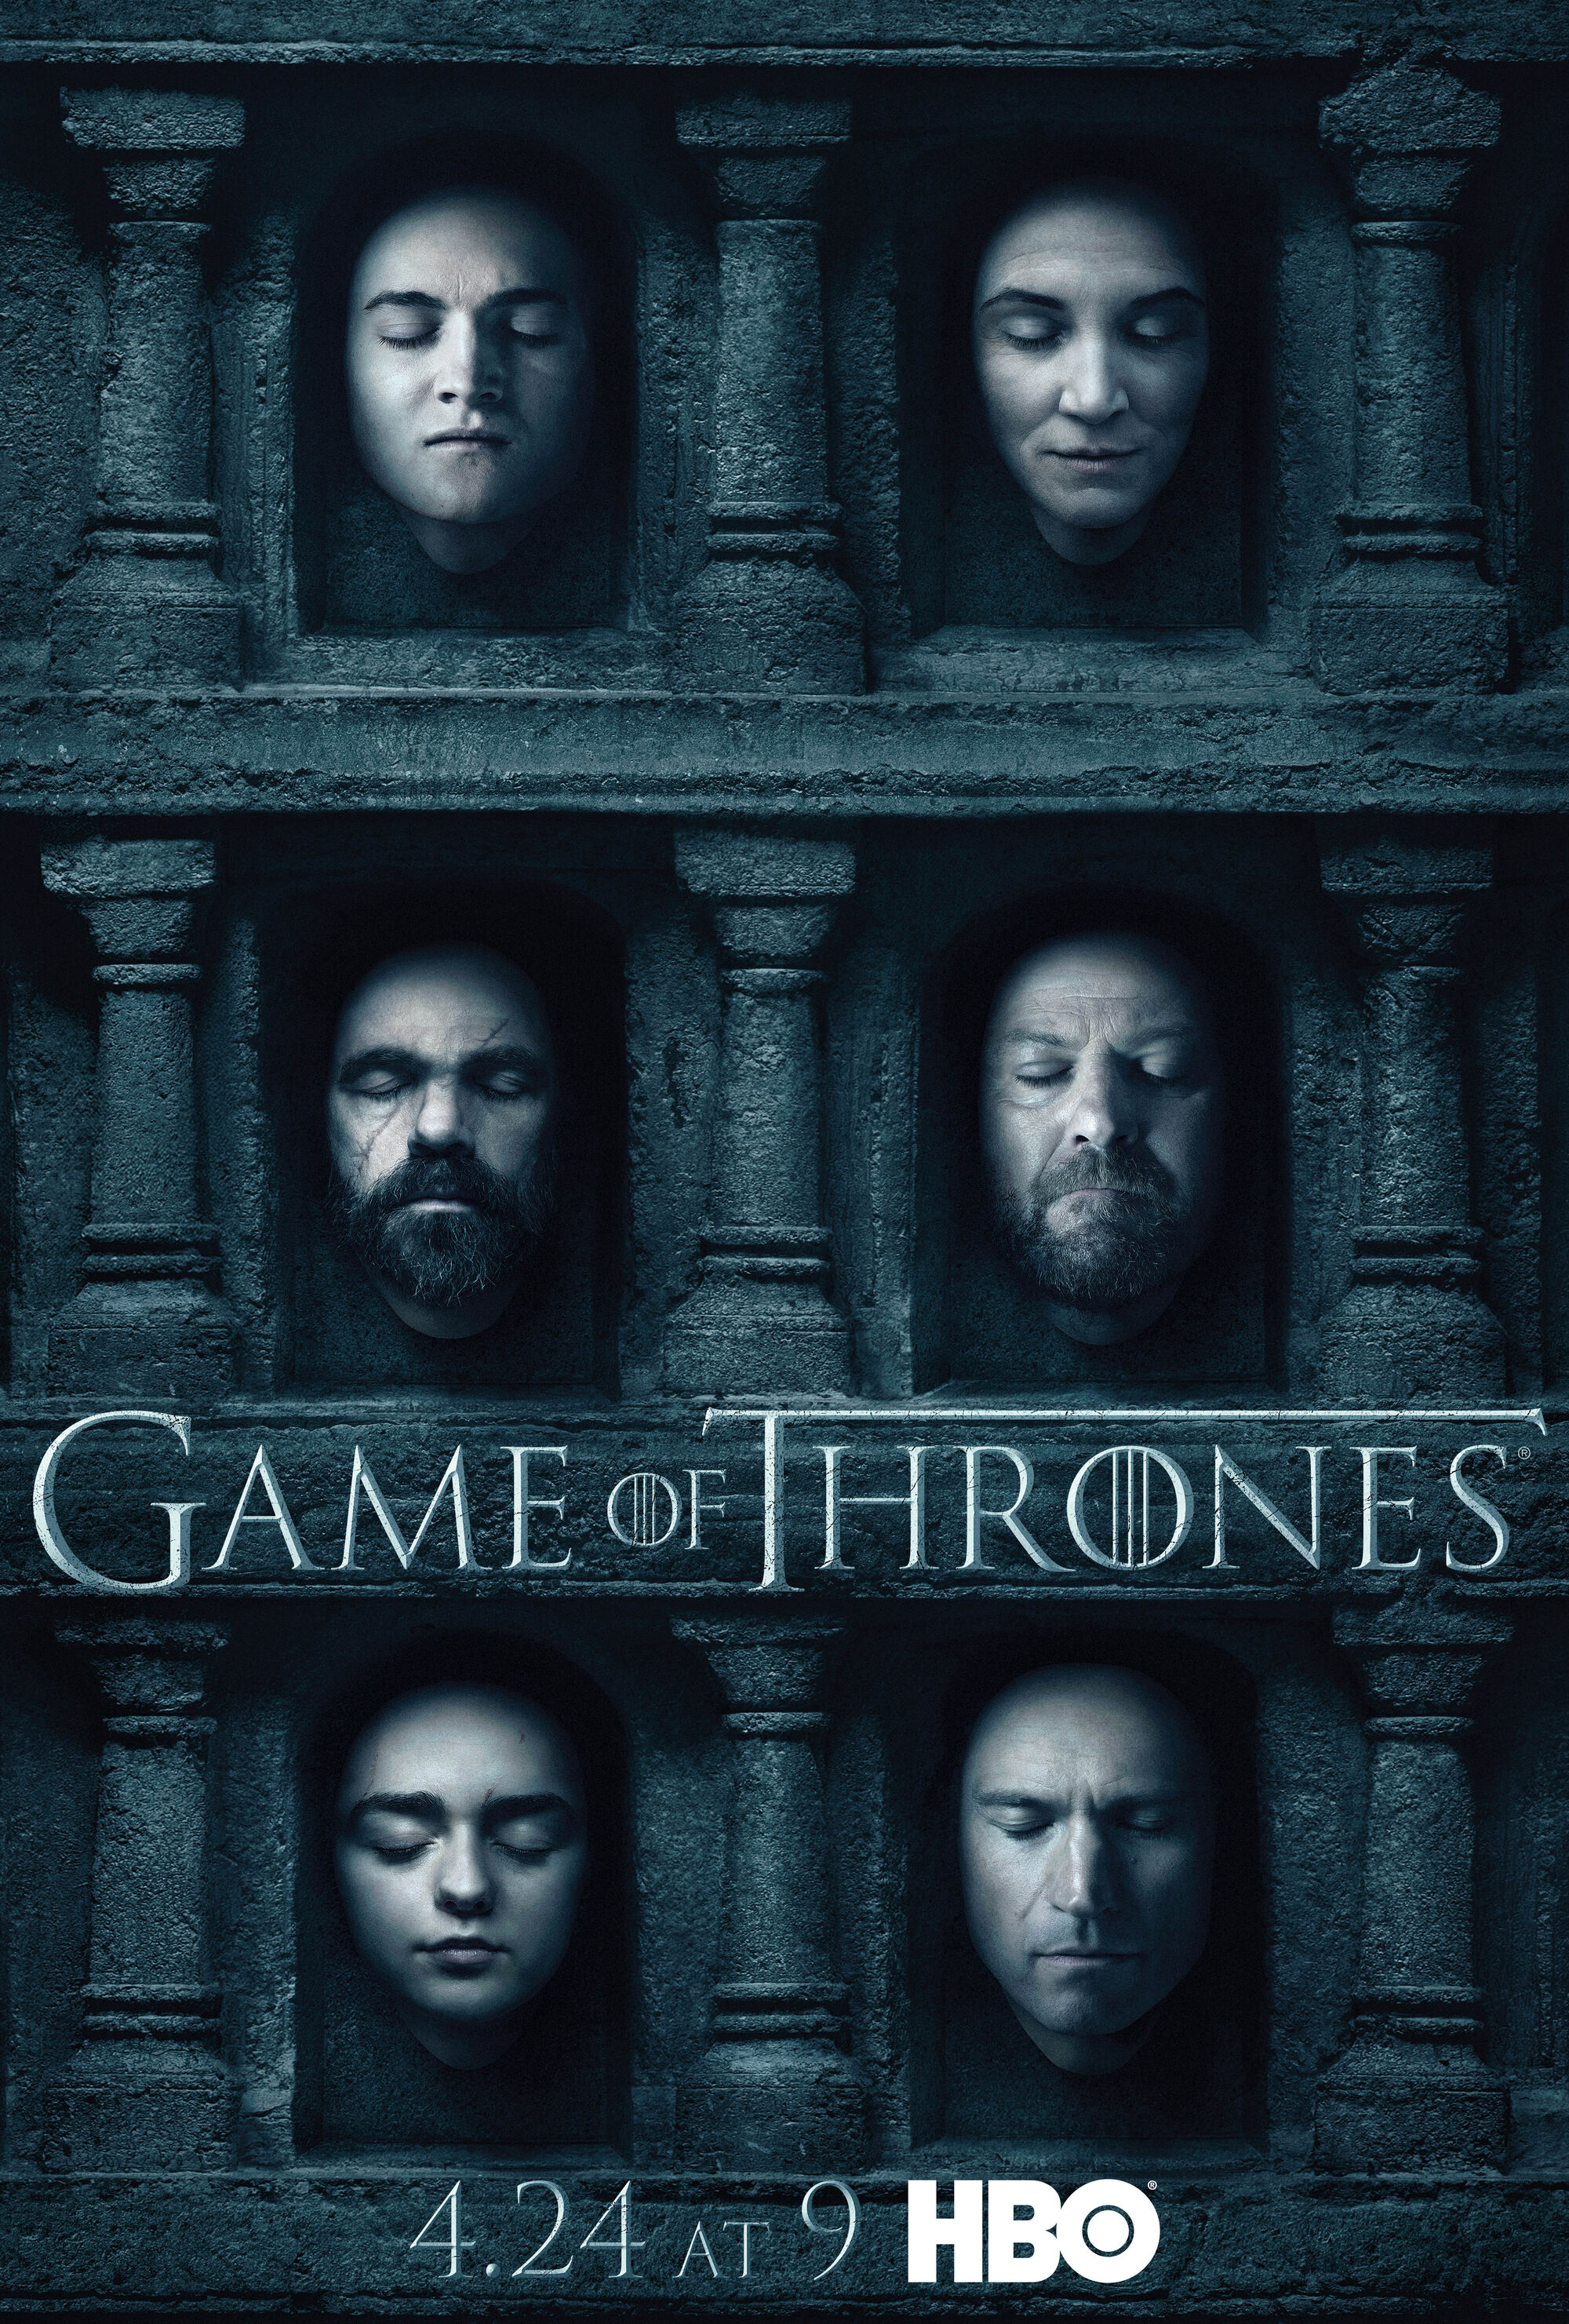 Game of thrones season 7 episode 2 movie download